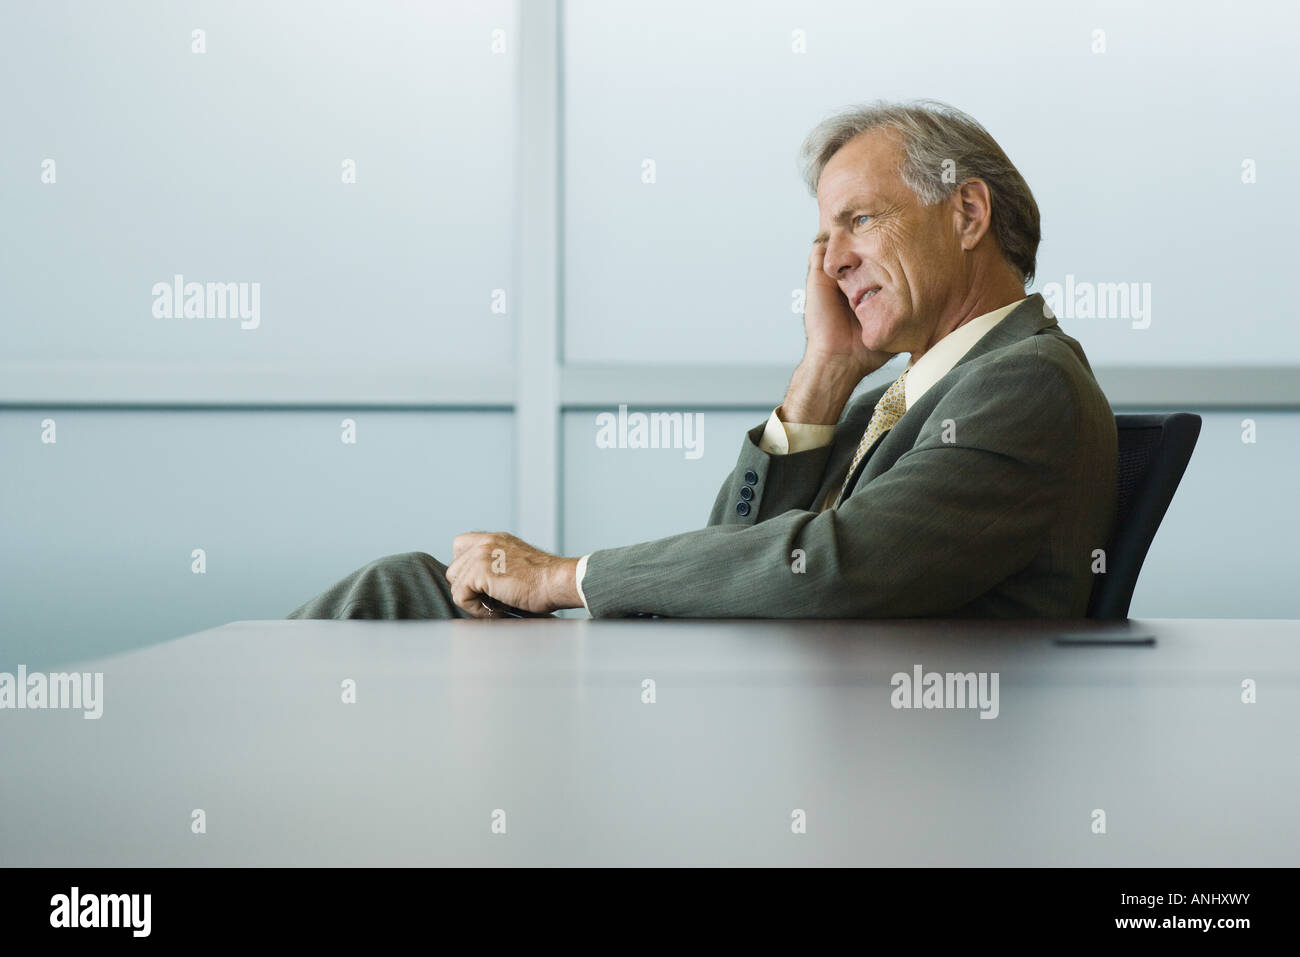 Businessman seated, holding head, looking away - Stock Image